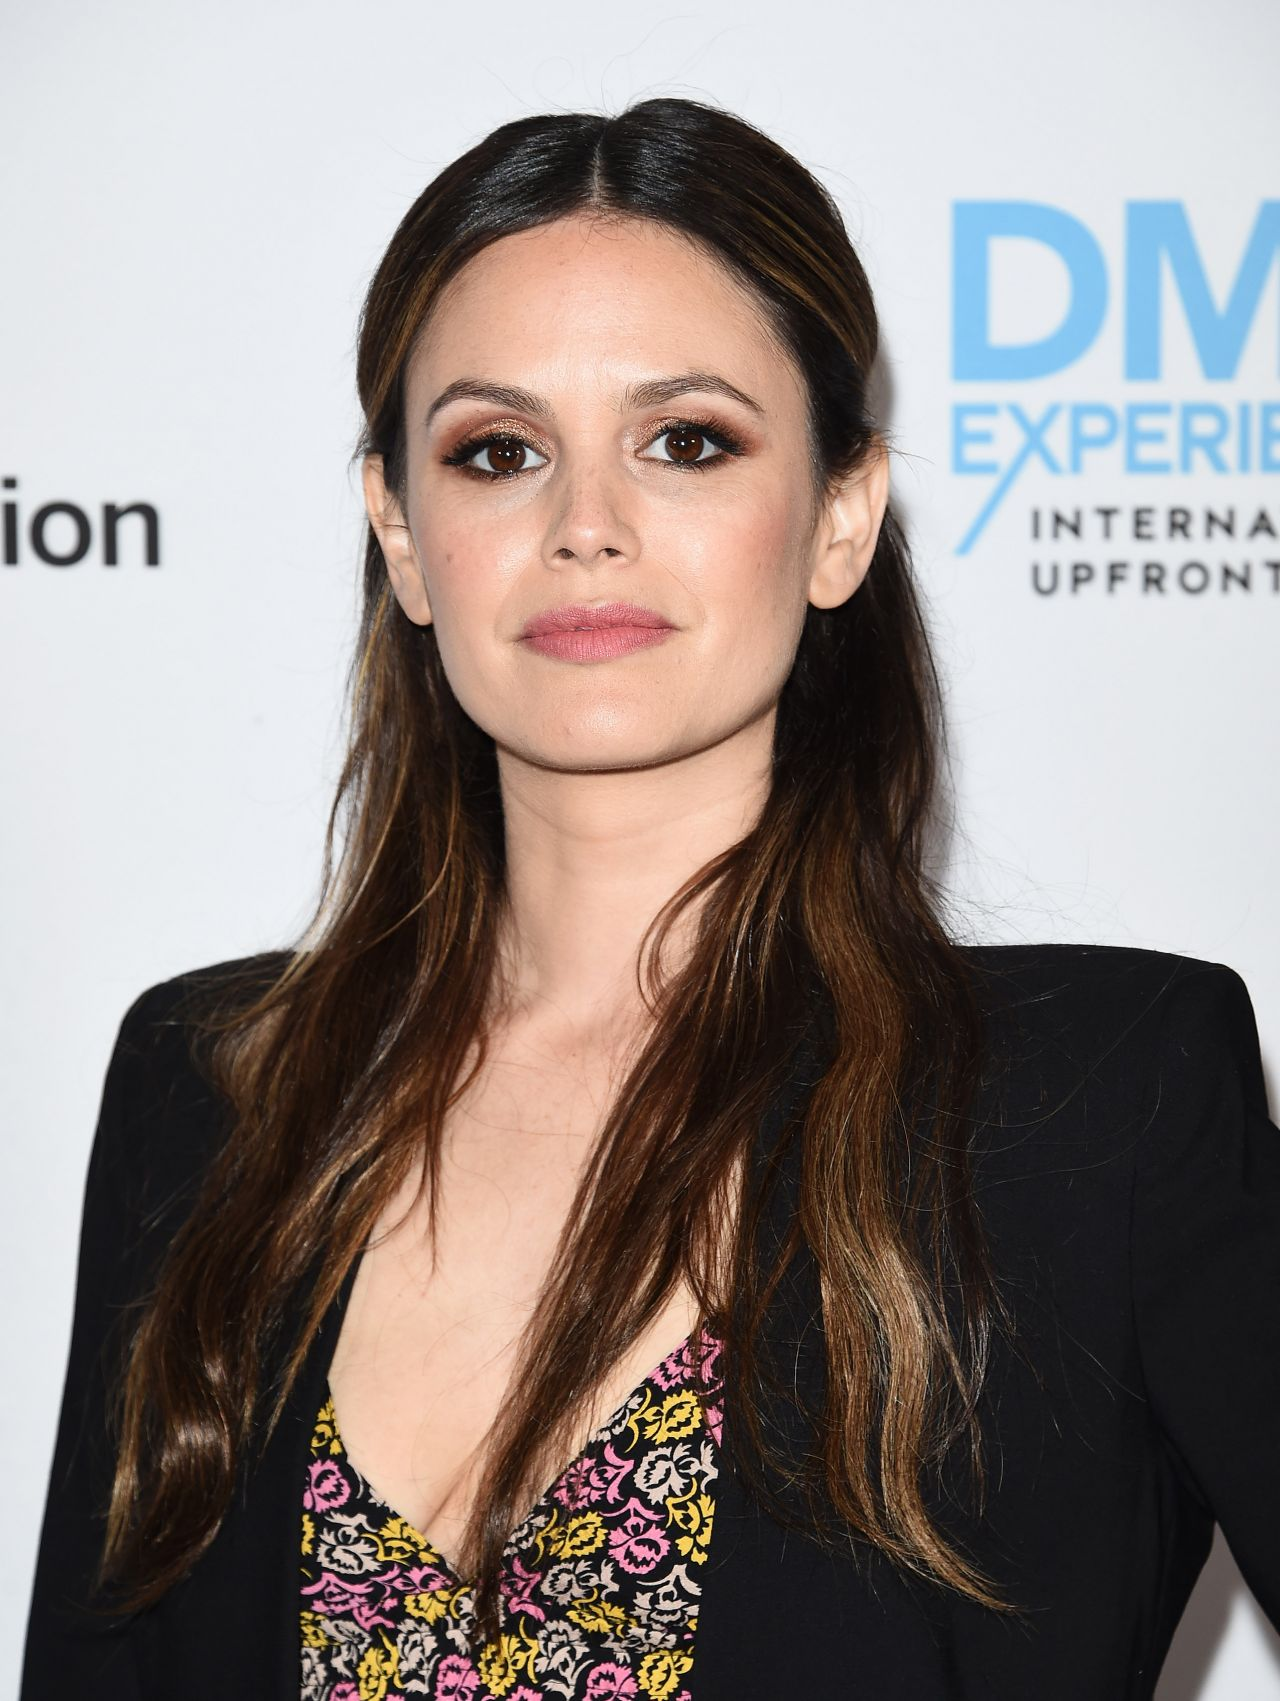 http://celebmafia.com/wp-content/uploads/2018/05/rachel-bilson-2018-disney-abc-international-upfronts-in-la-2.jpg